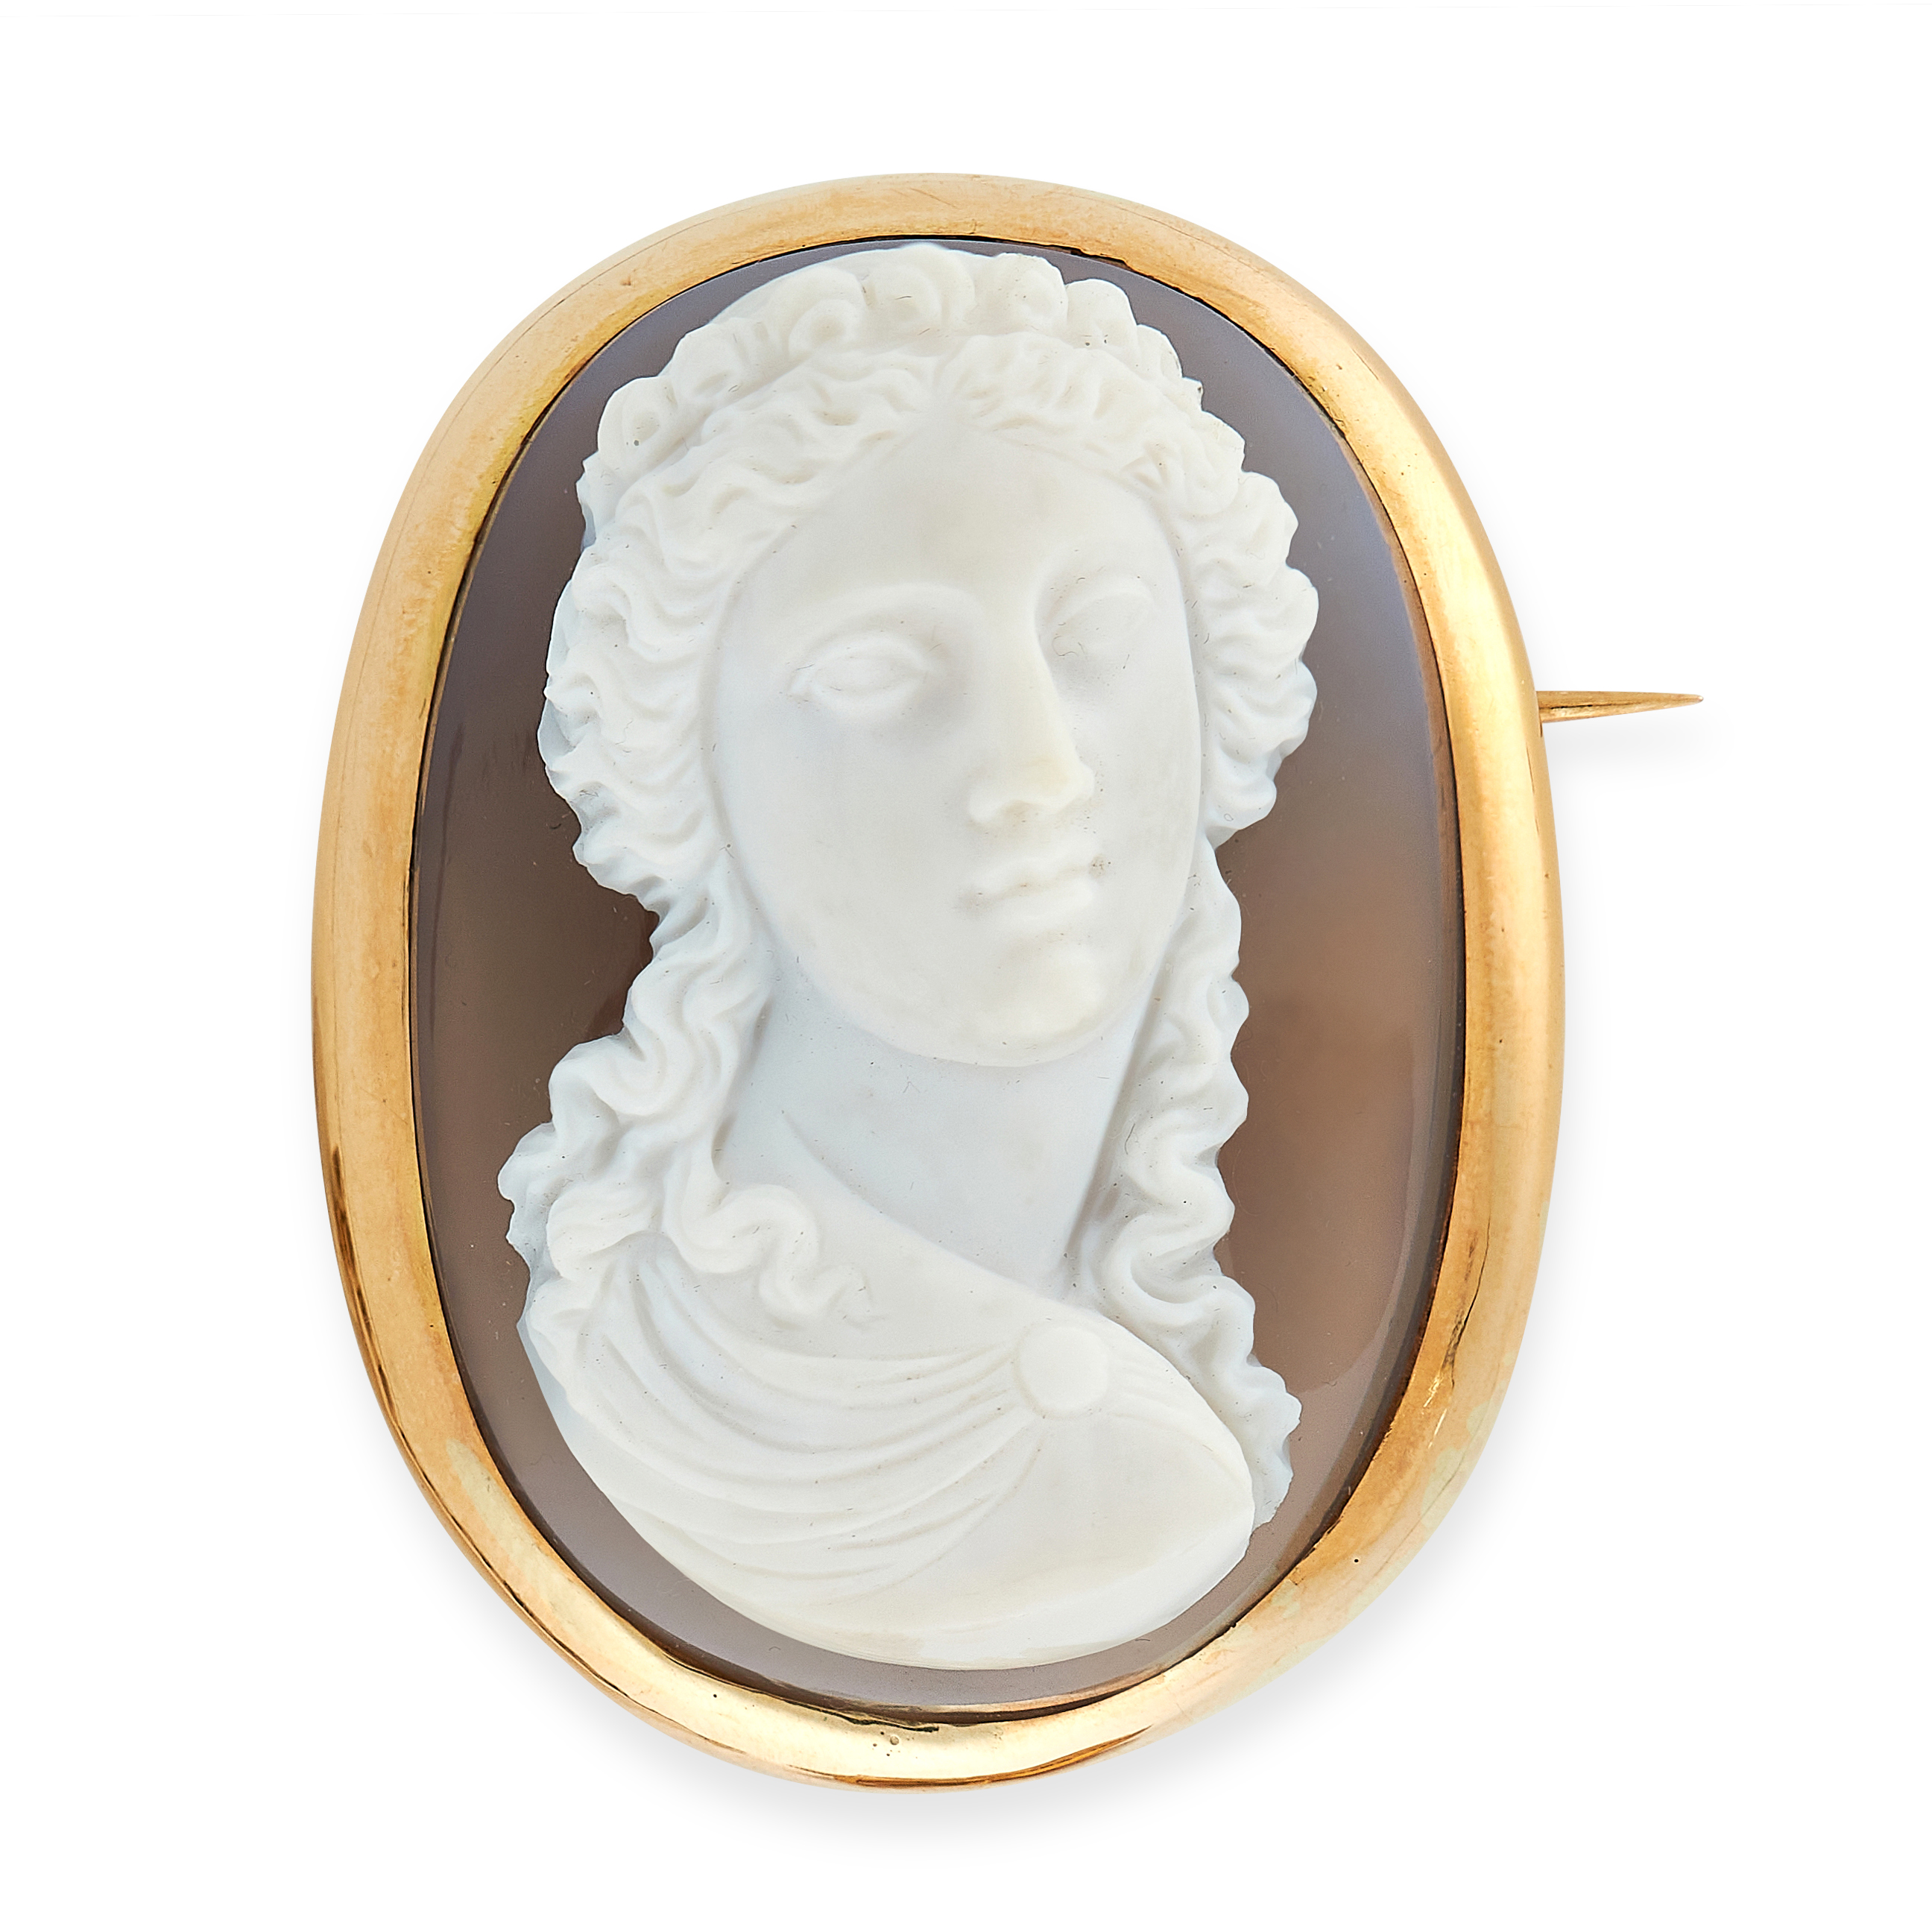 ANTIQUE AGATE CAMEO BROOCH in yellow gold, set with a carved bust of a Grecian lady in gold